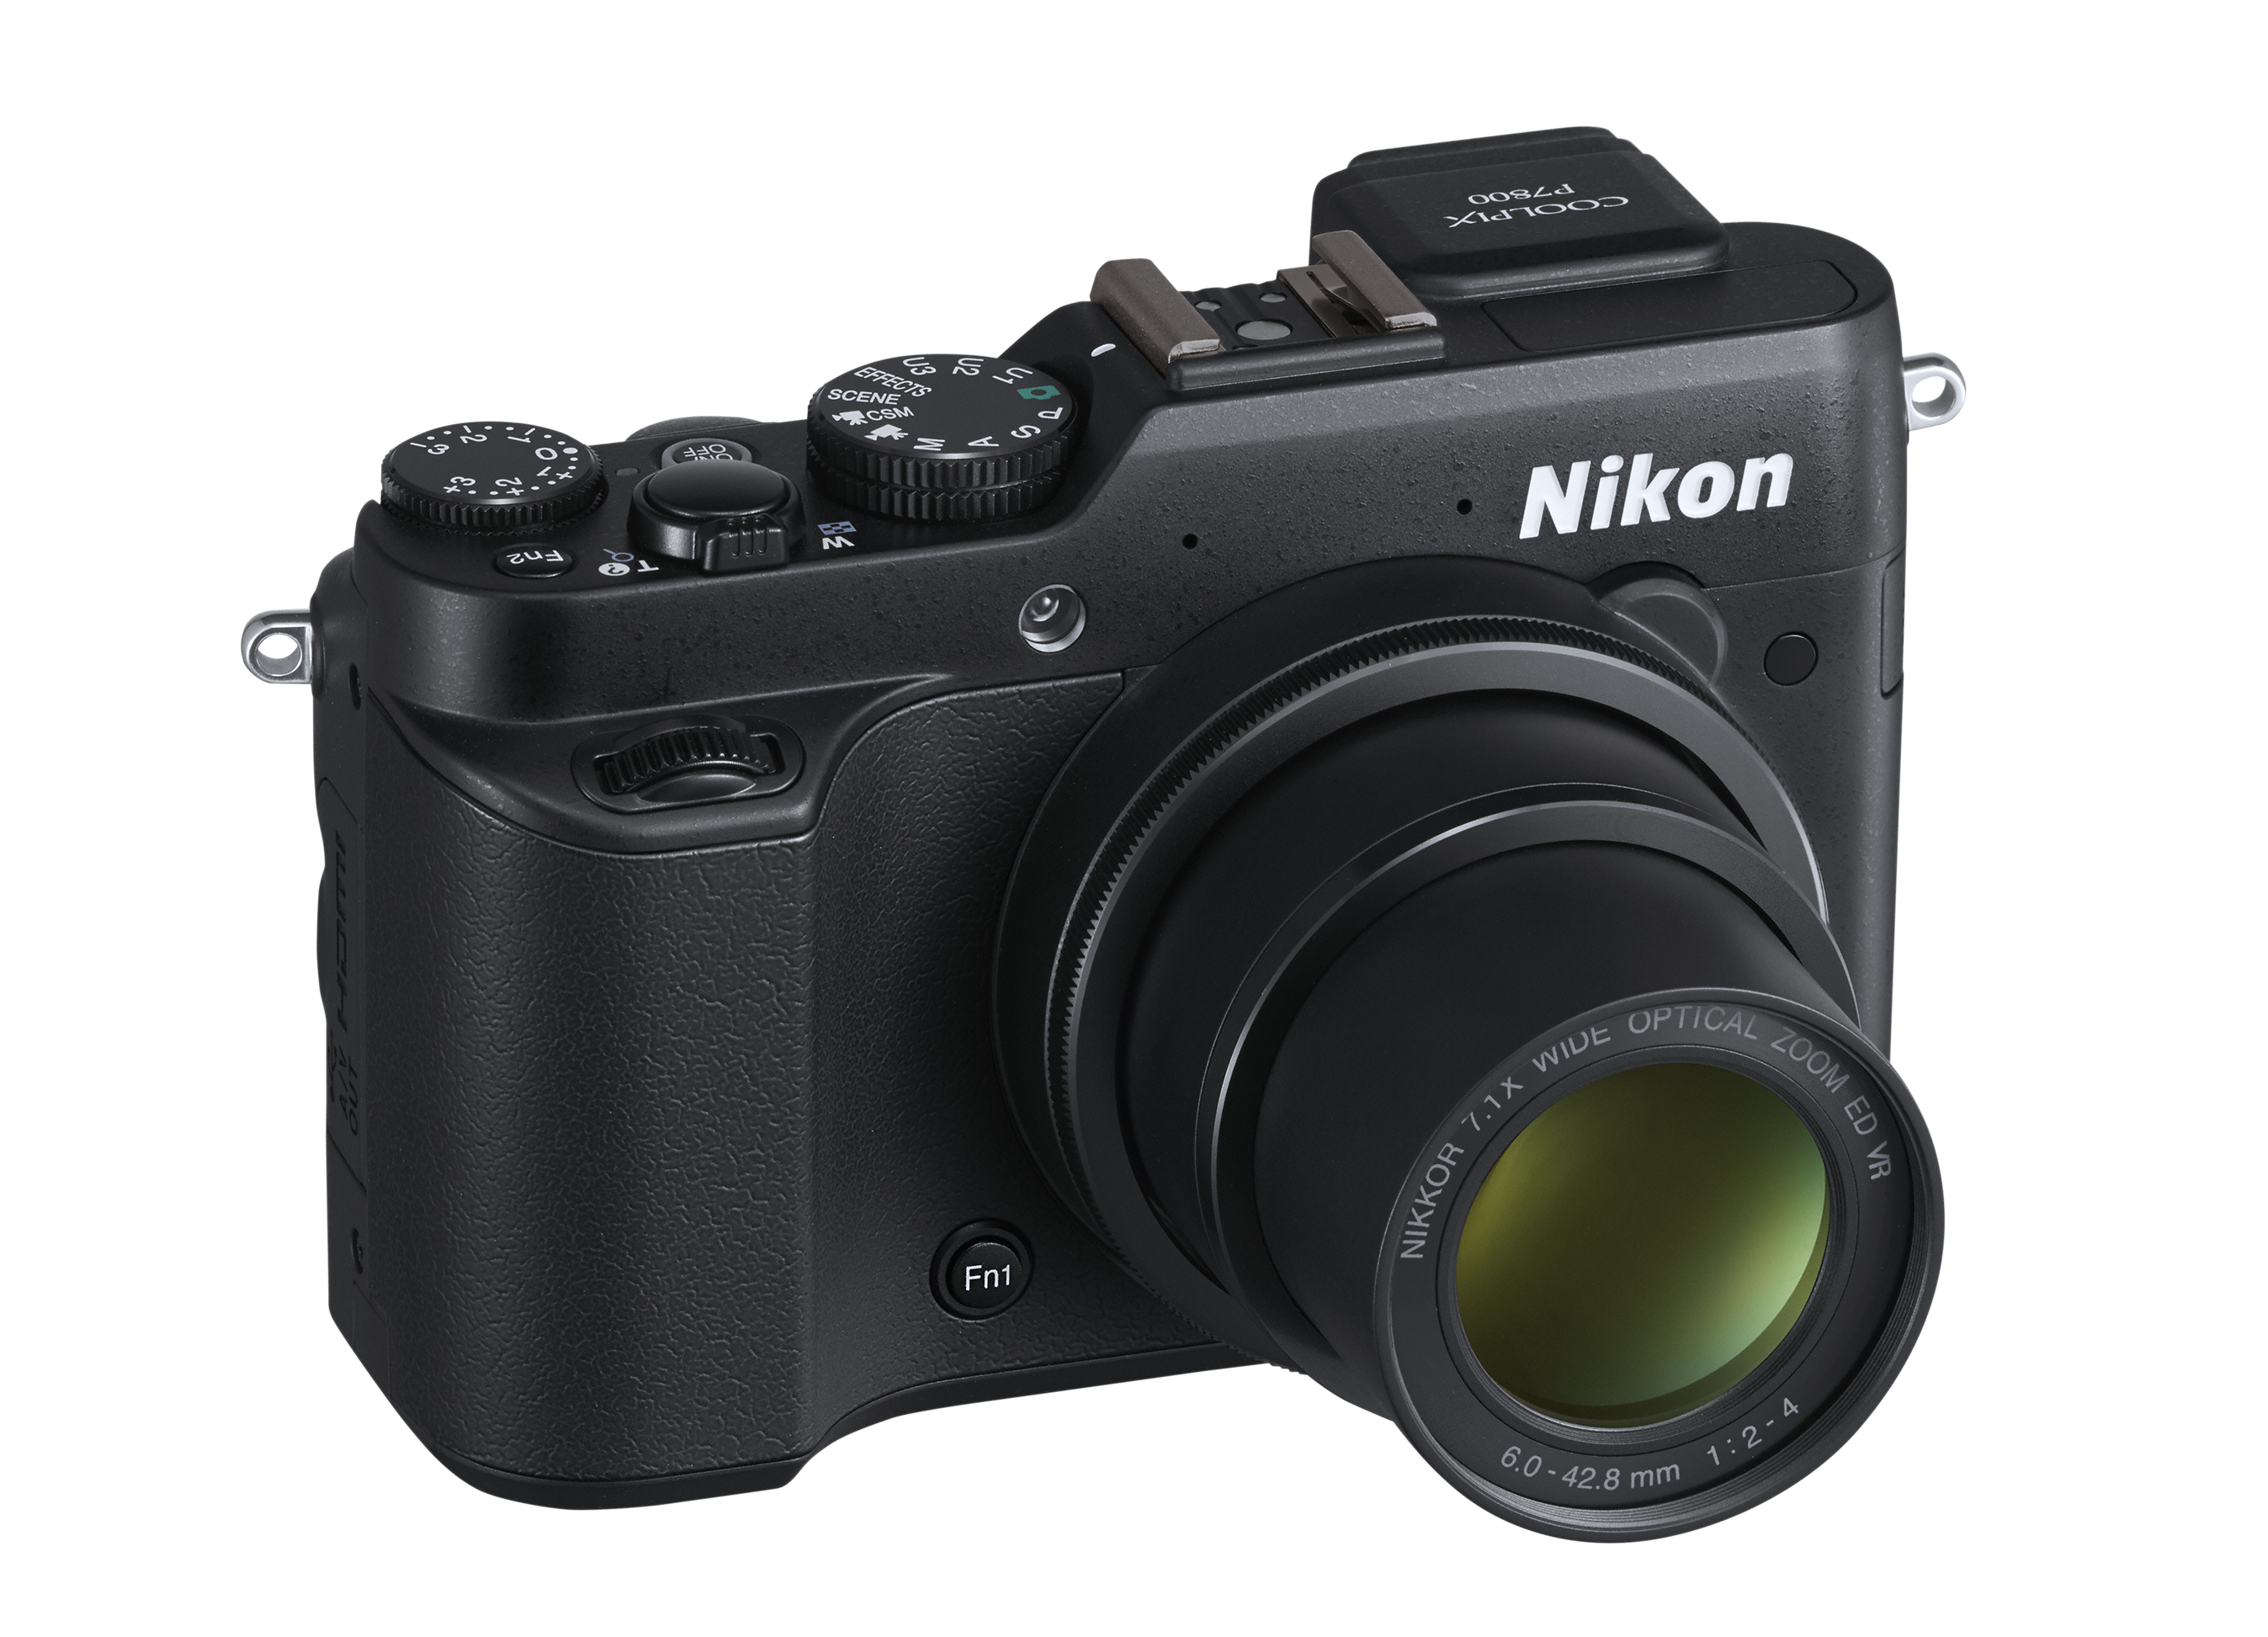 "Nikon COOLPIX P7800. ""The Nikon COOLPIX P7800 is a 12.2 MP advanced performance compact digital camera with a 7.1x optical zoom, and the ability to shoot still images including RAW files, and Full HD 1080p video."""